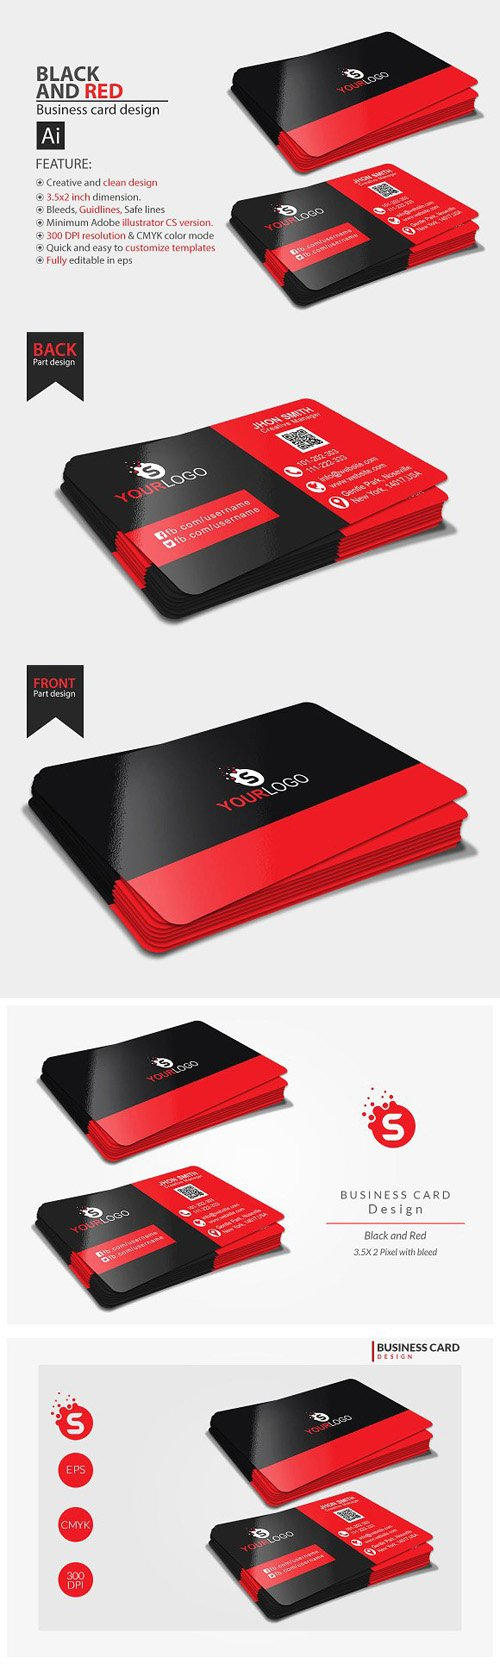 Corporate Business card design 1476426